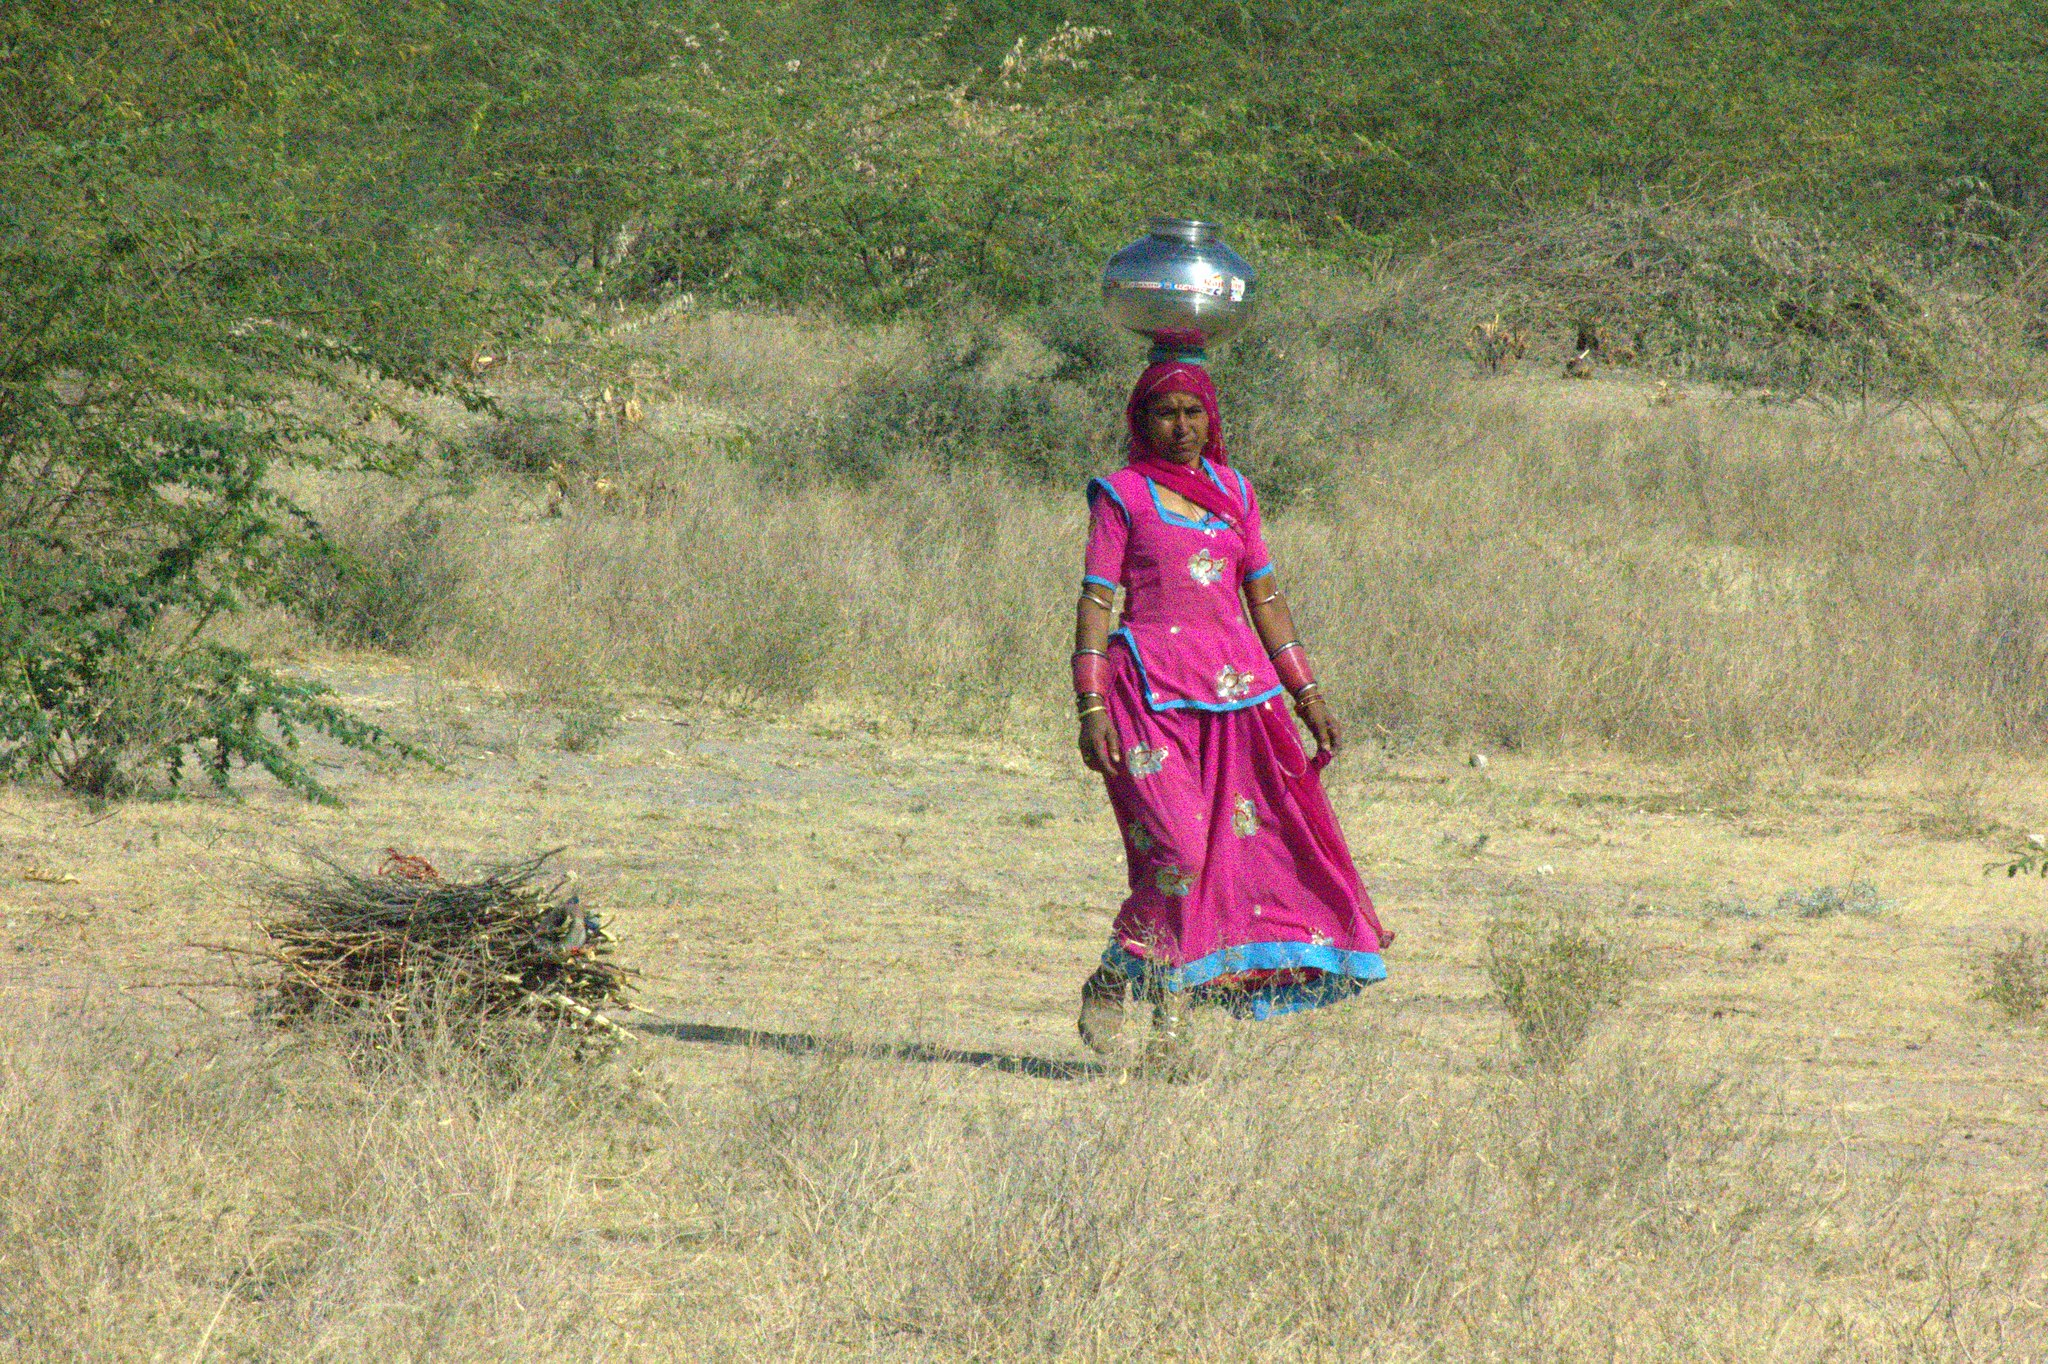 A Salawas woman walking to get water